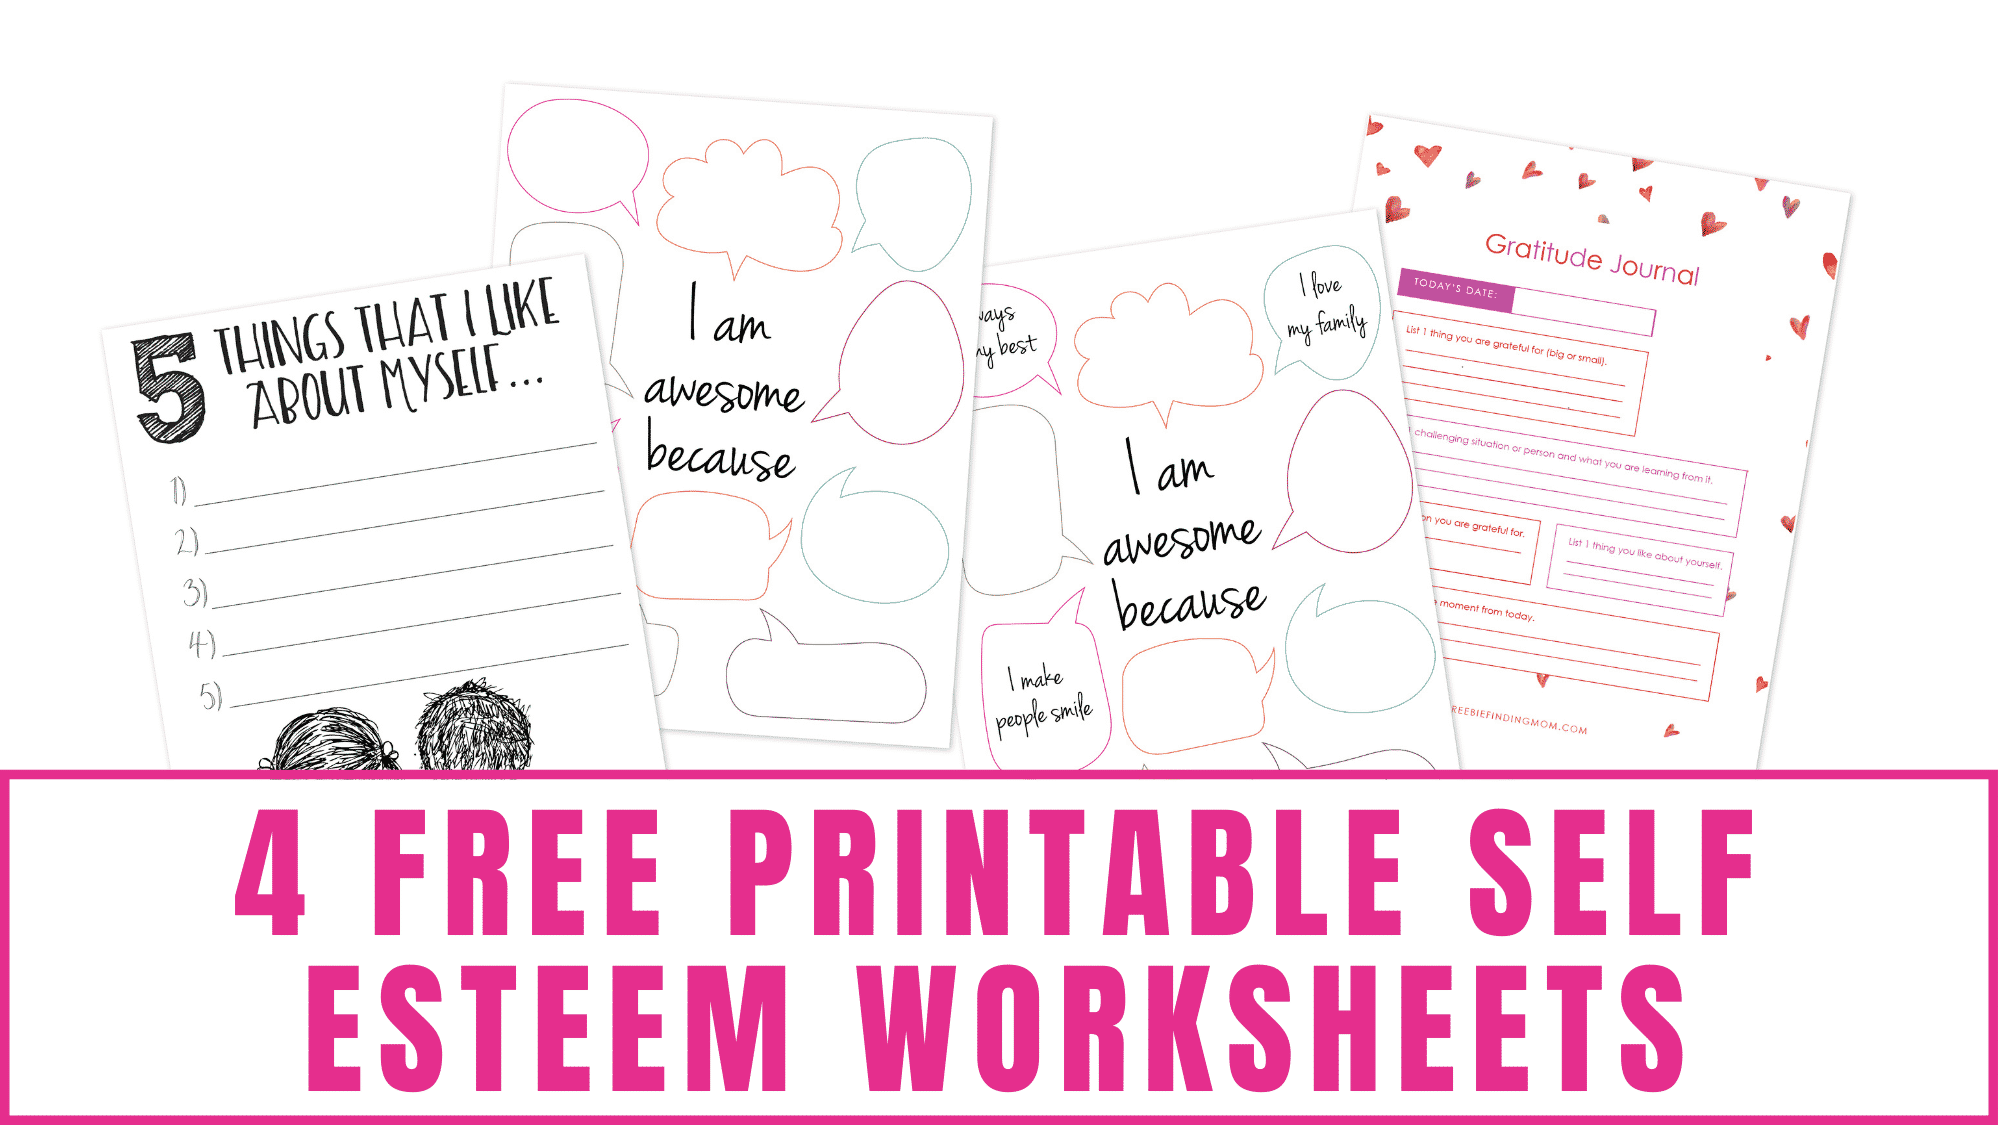 Free printable self esteem worksheets including a gratitude journal is a great way at expressing your gratitude and appreciation daily.